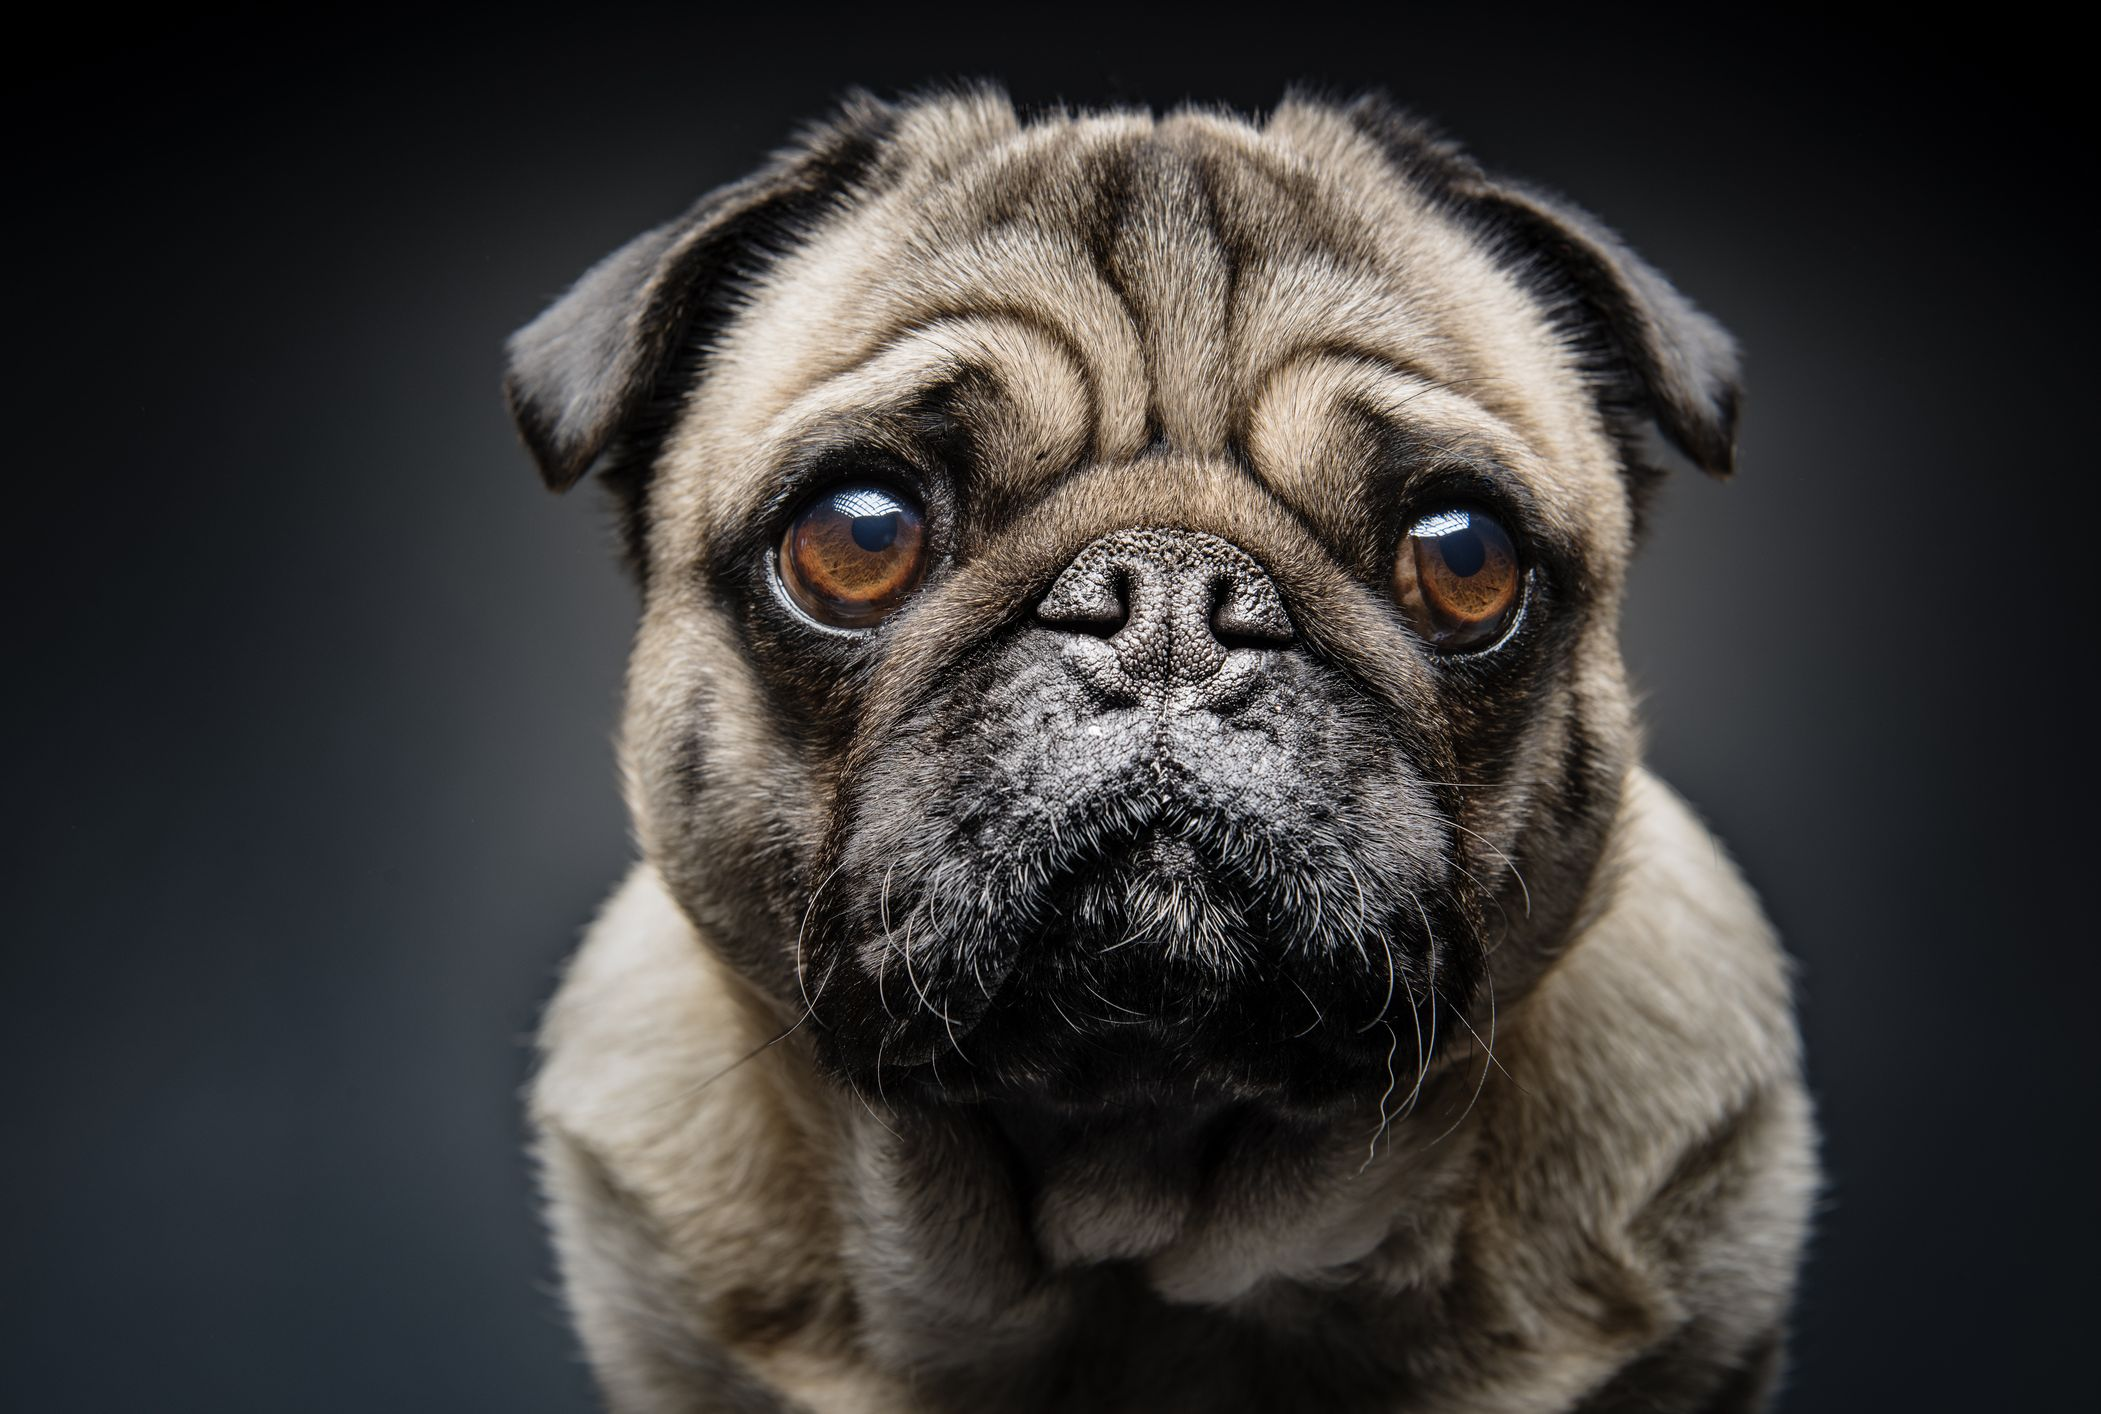 Veterinarian says pugs could be more susceptible to coronavirus